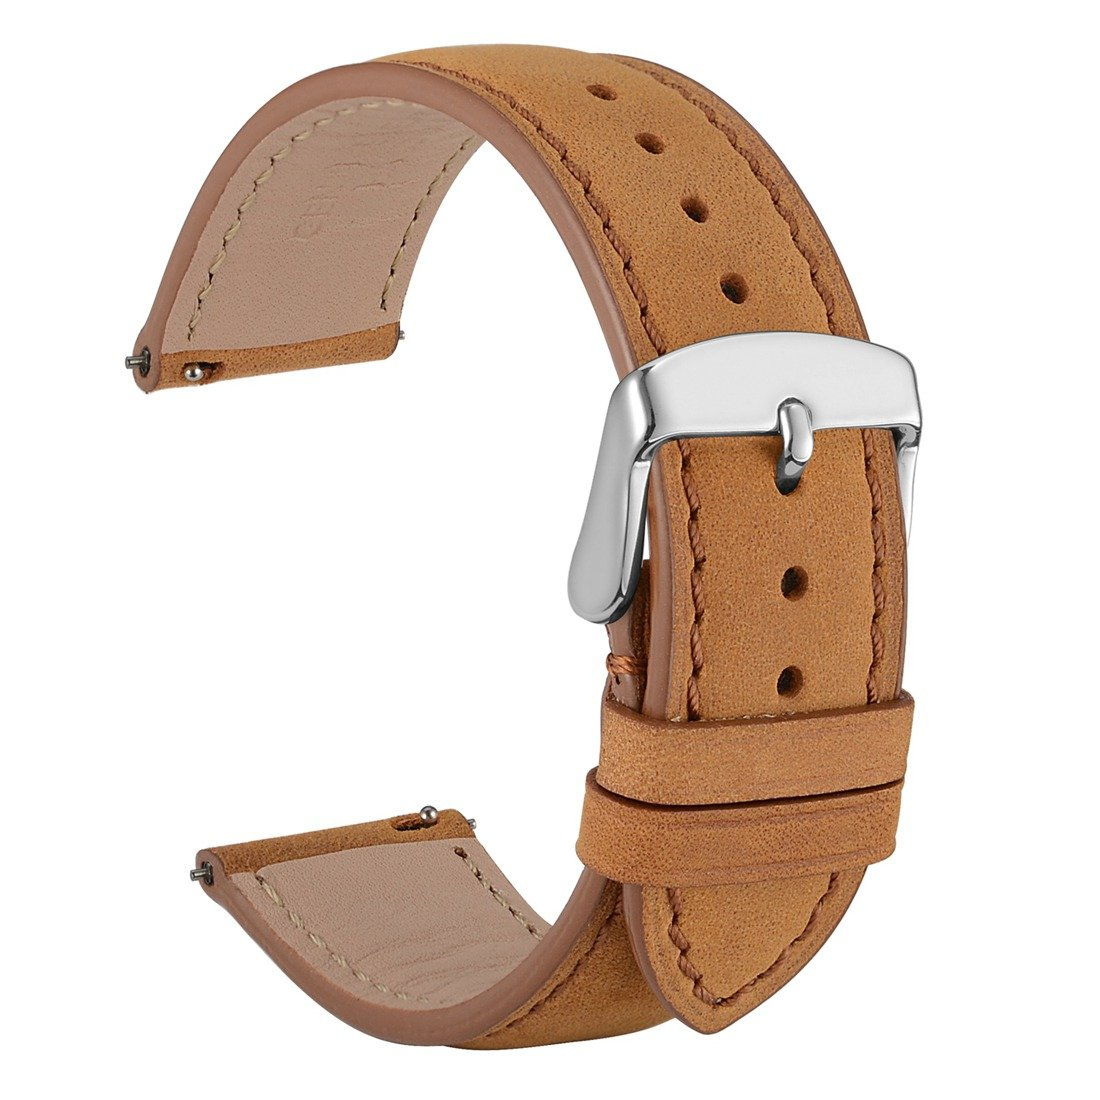 WOCCI 18mm Suede Vintage Leather Watch Band with Pins Buckle, Quick Release Strap (Light Brown with Tone on Tone Seam)